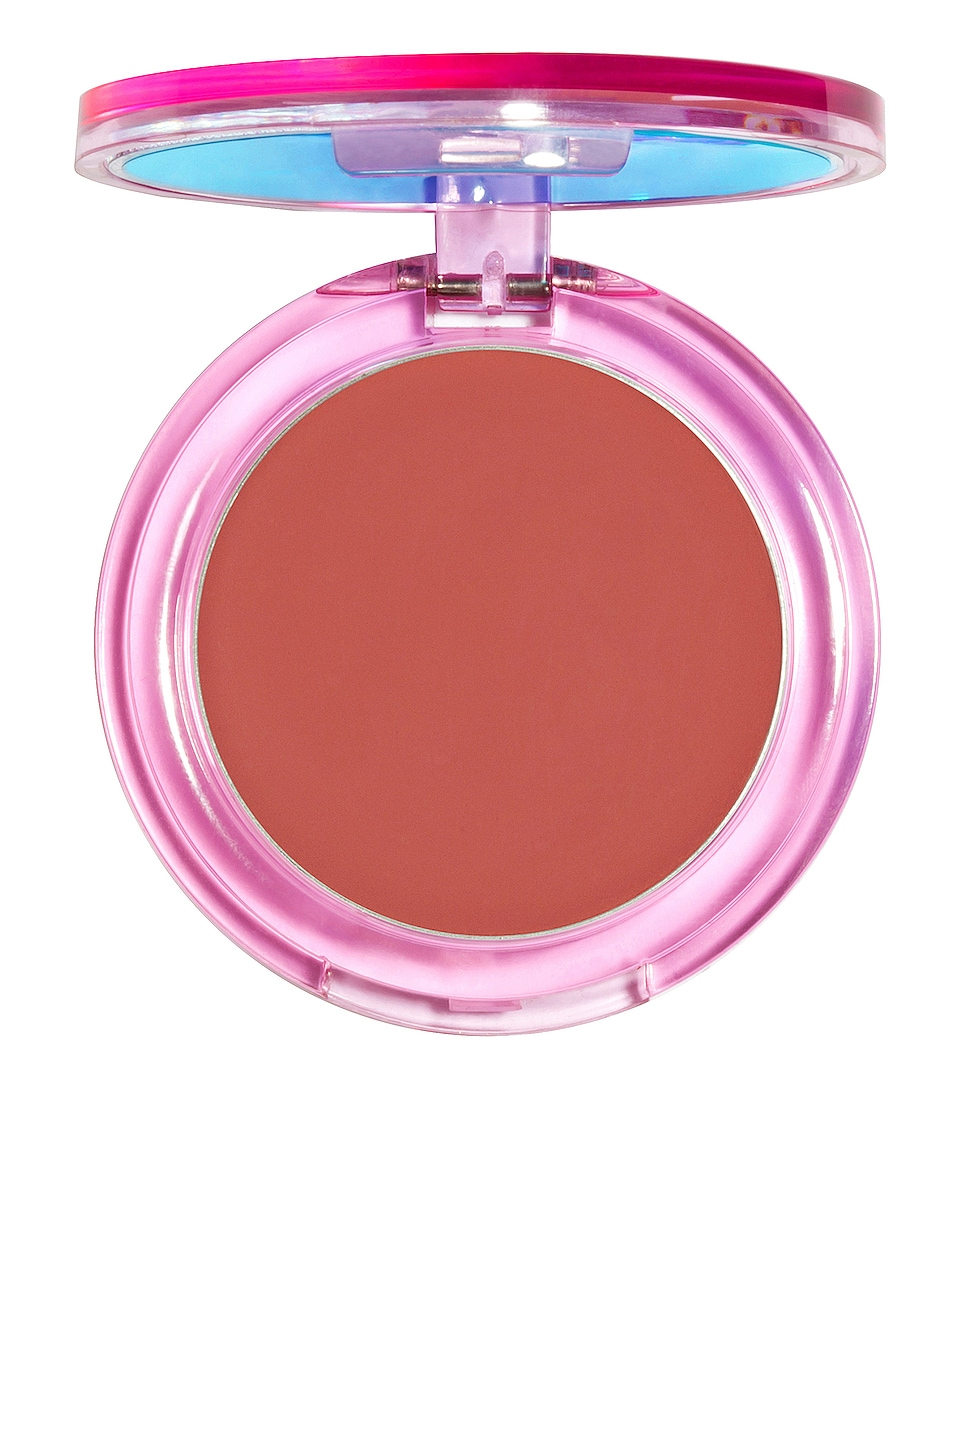 Lime Crime Soft Matte Softwear Blush in Gigabyte BB